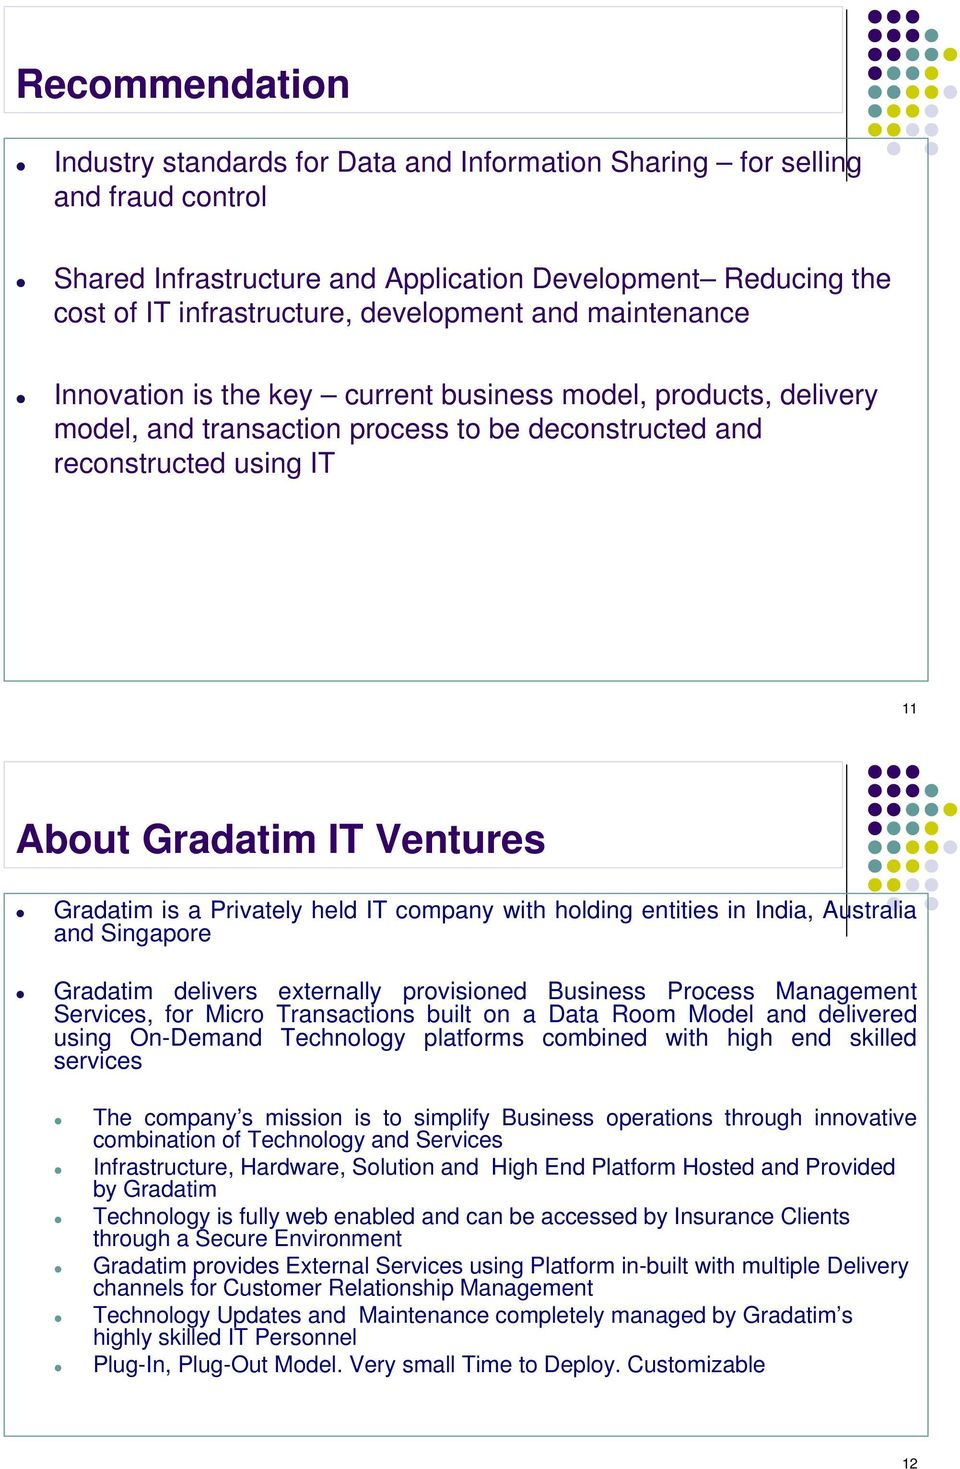 is a Privately held IT company with holding entities in India, Australia and Singapore Gradatim delivers externally provisioned Business Process Management Services, for Micro Transactions built on a